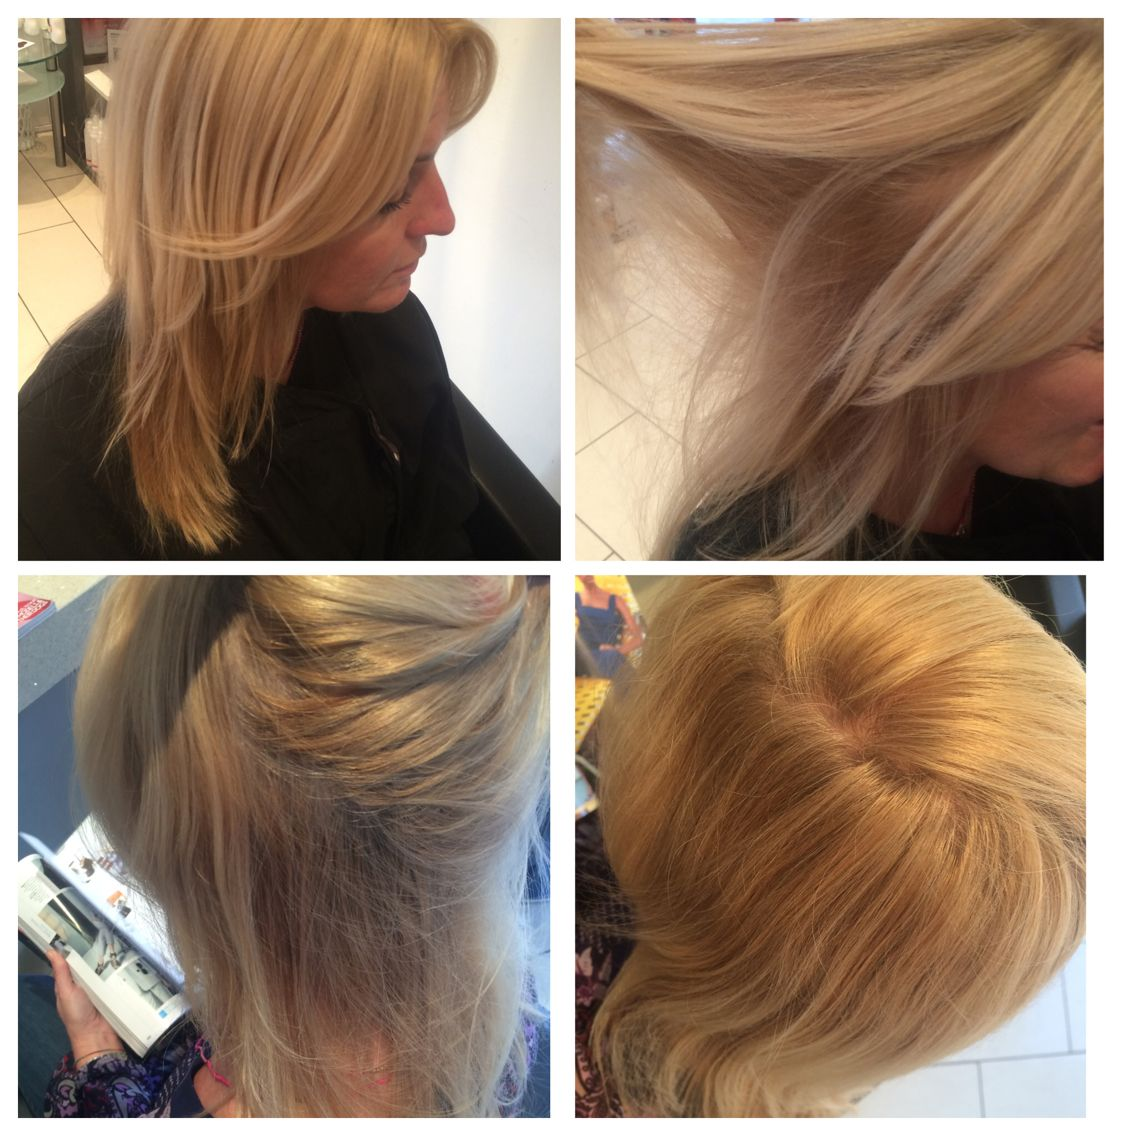 Root tint- with 10.0 with 30 vol and a smooth volumed blowdry to finish  using